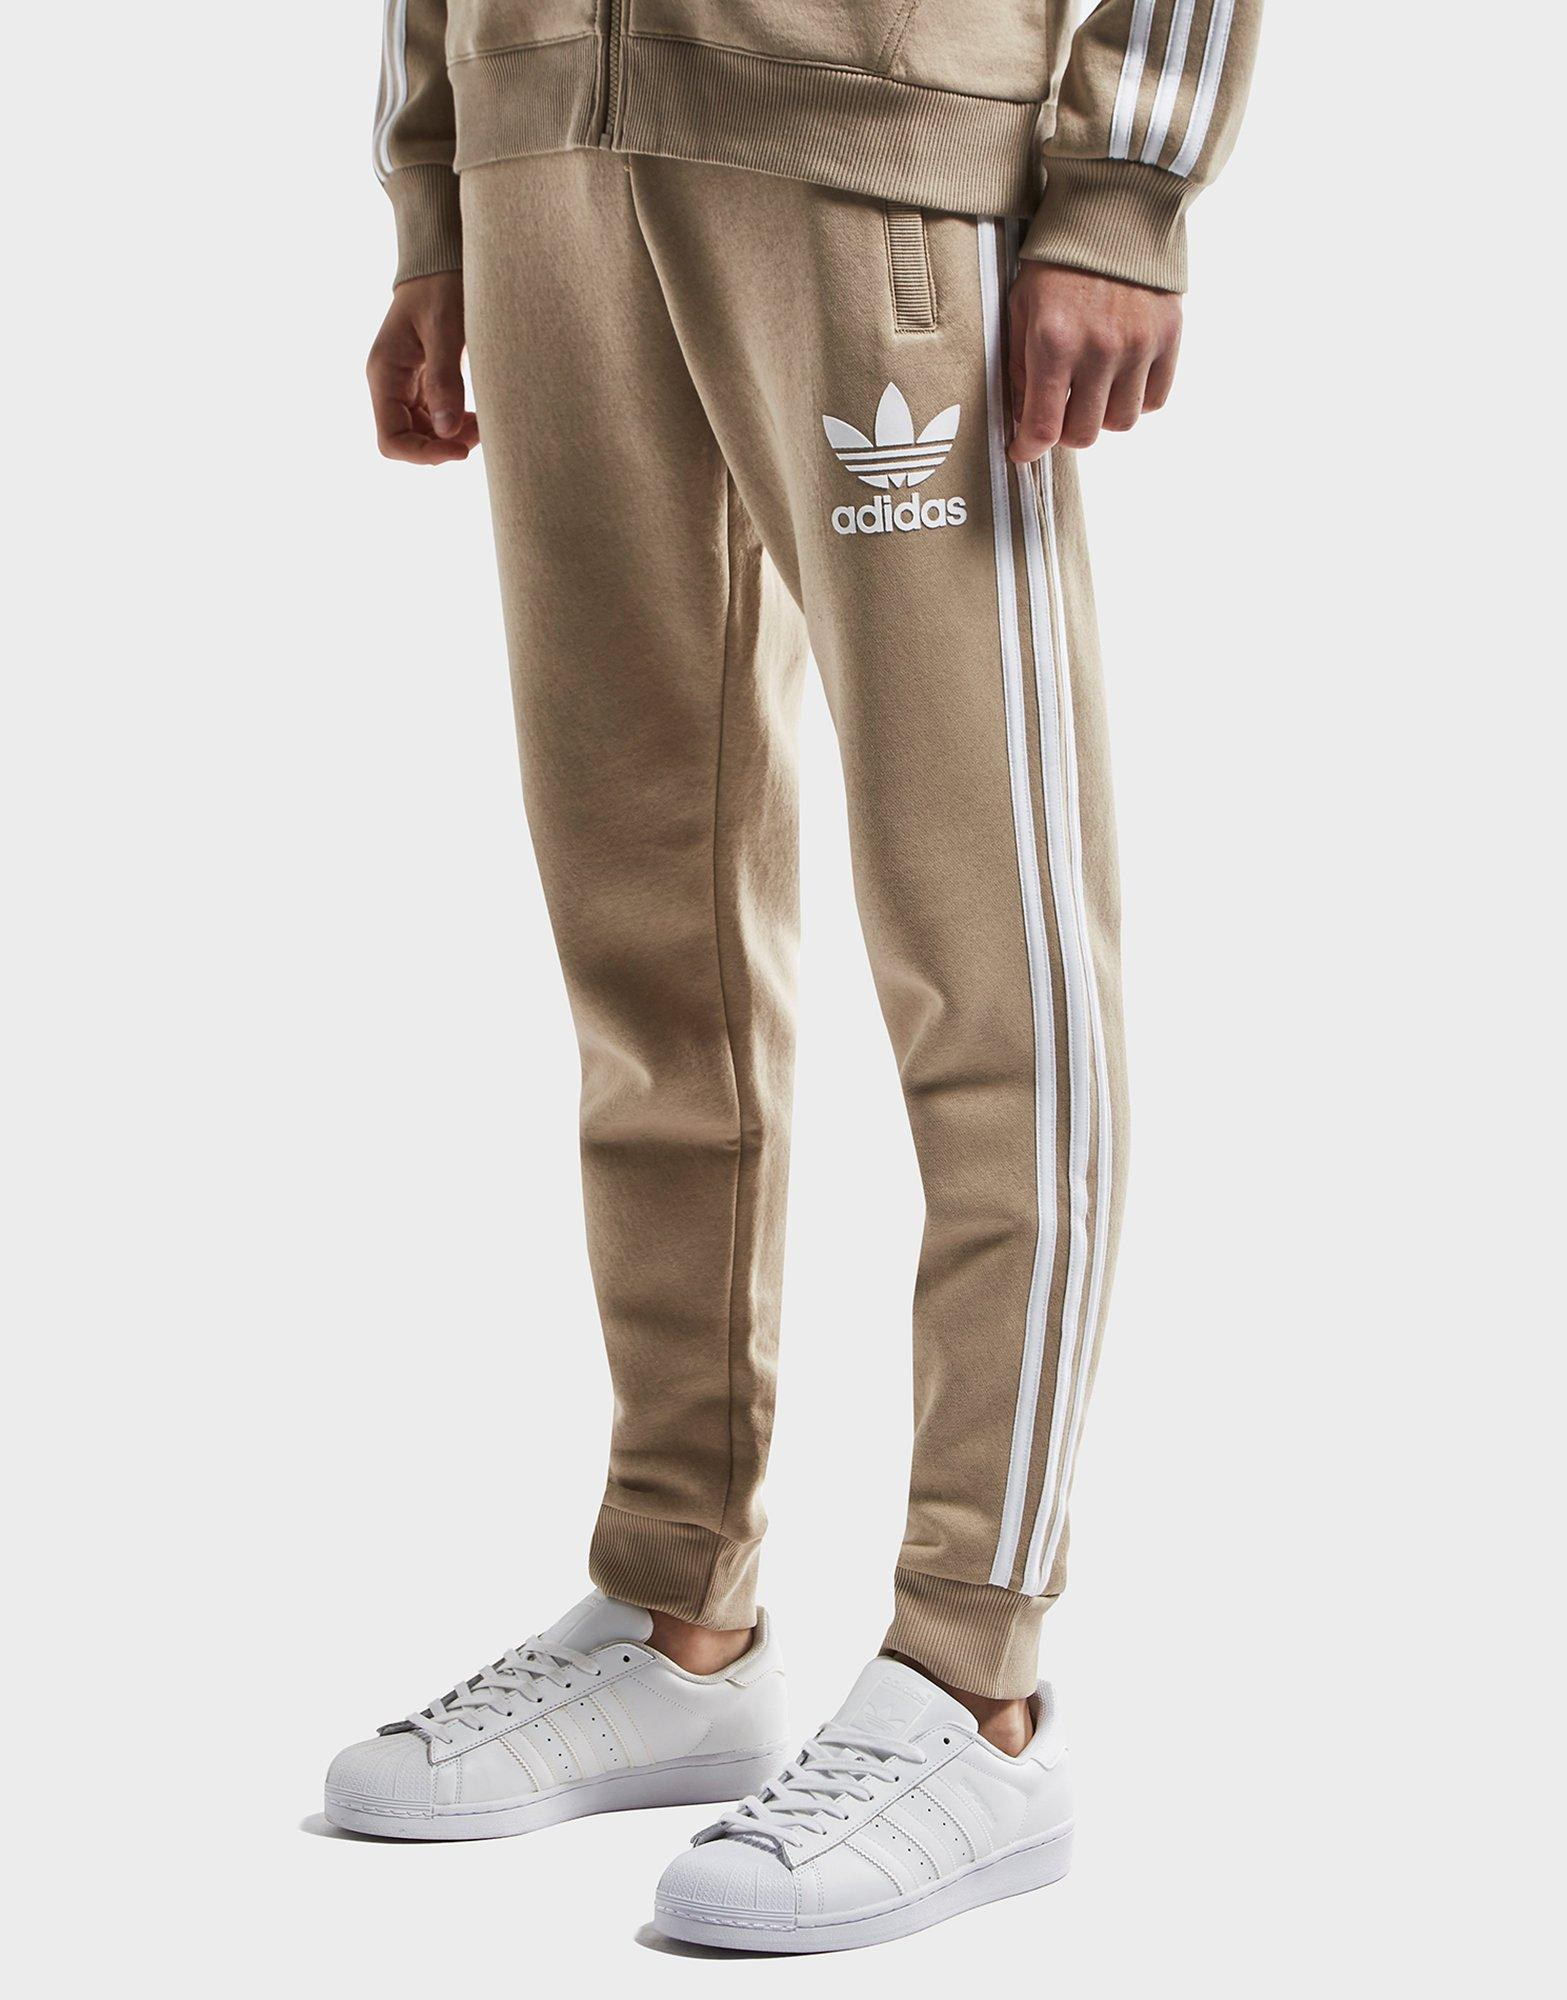 adidas california cuffed track pants